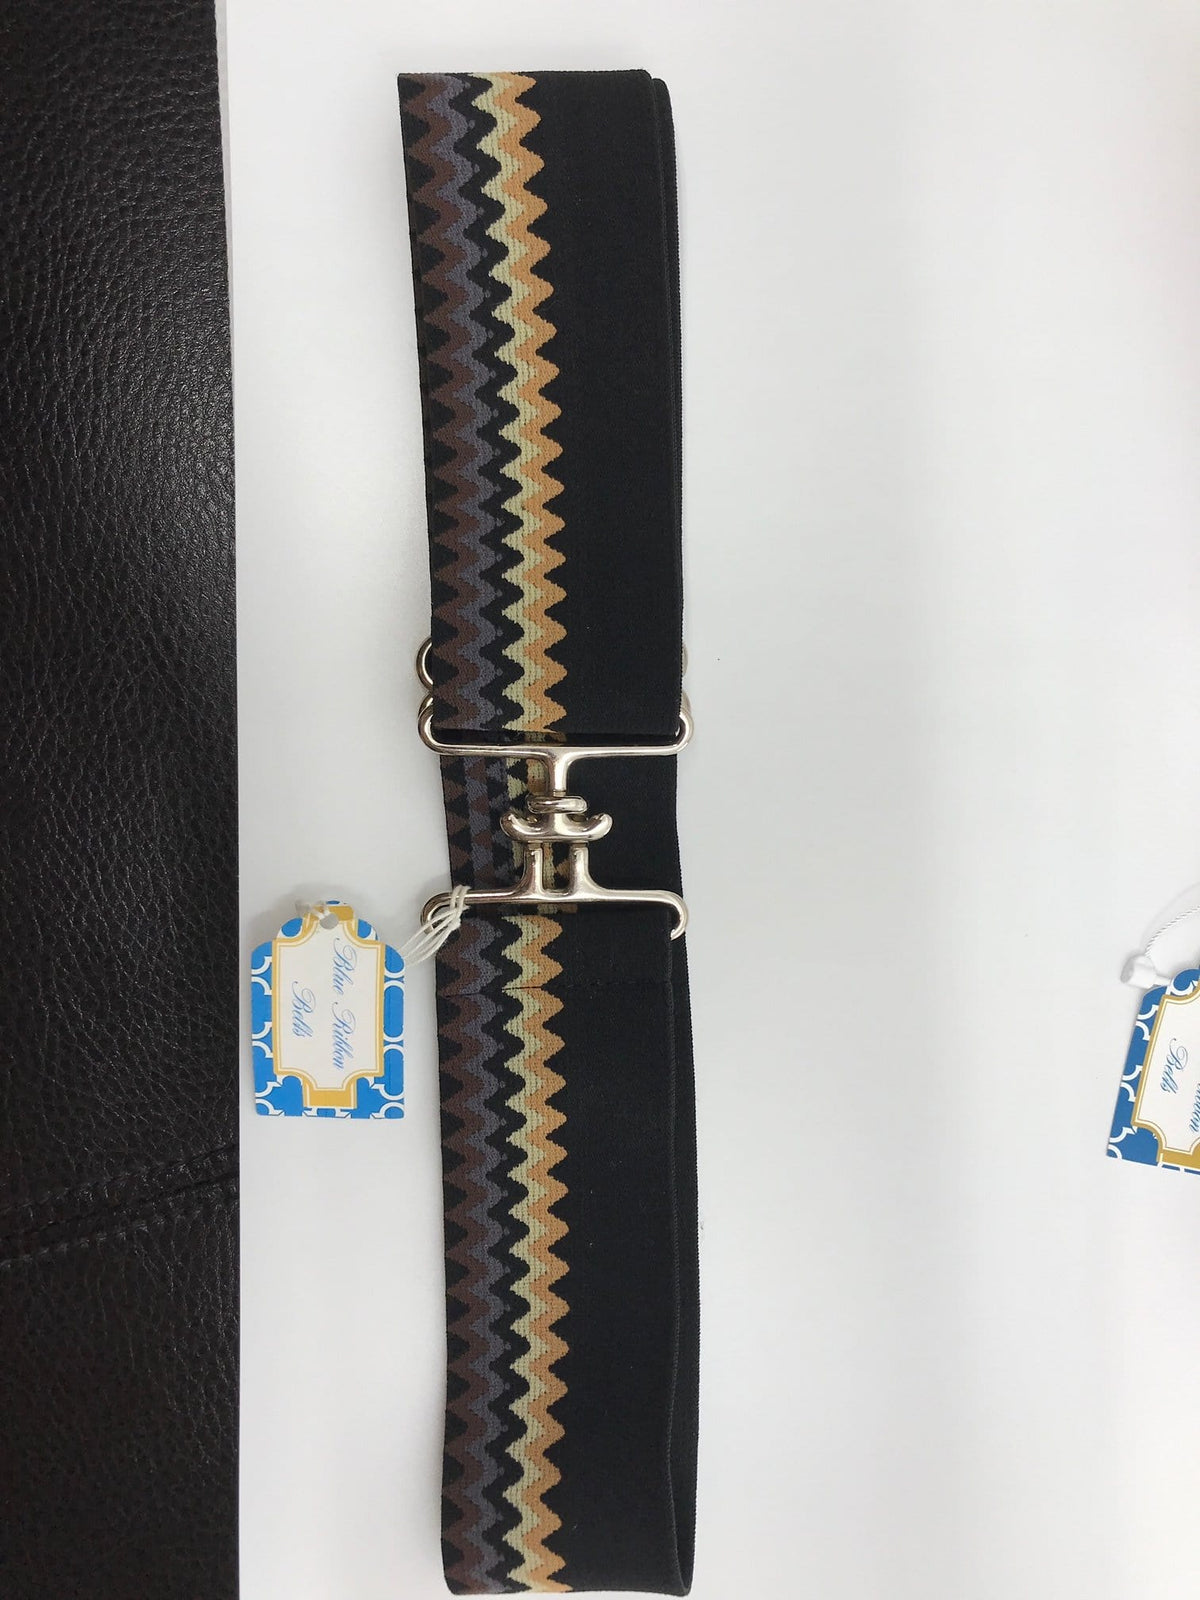 Blue Ribbon Belts Belt Black ZigZag Blue Ribbon Belts - 2 Inch equestrian team apparel online tack store mobile tack store custom farm apparel custom show stable clothing equestrian lifestyle horse show clothing riding clothes horses equestrian tack store